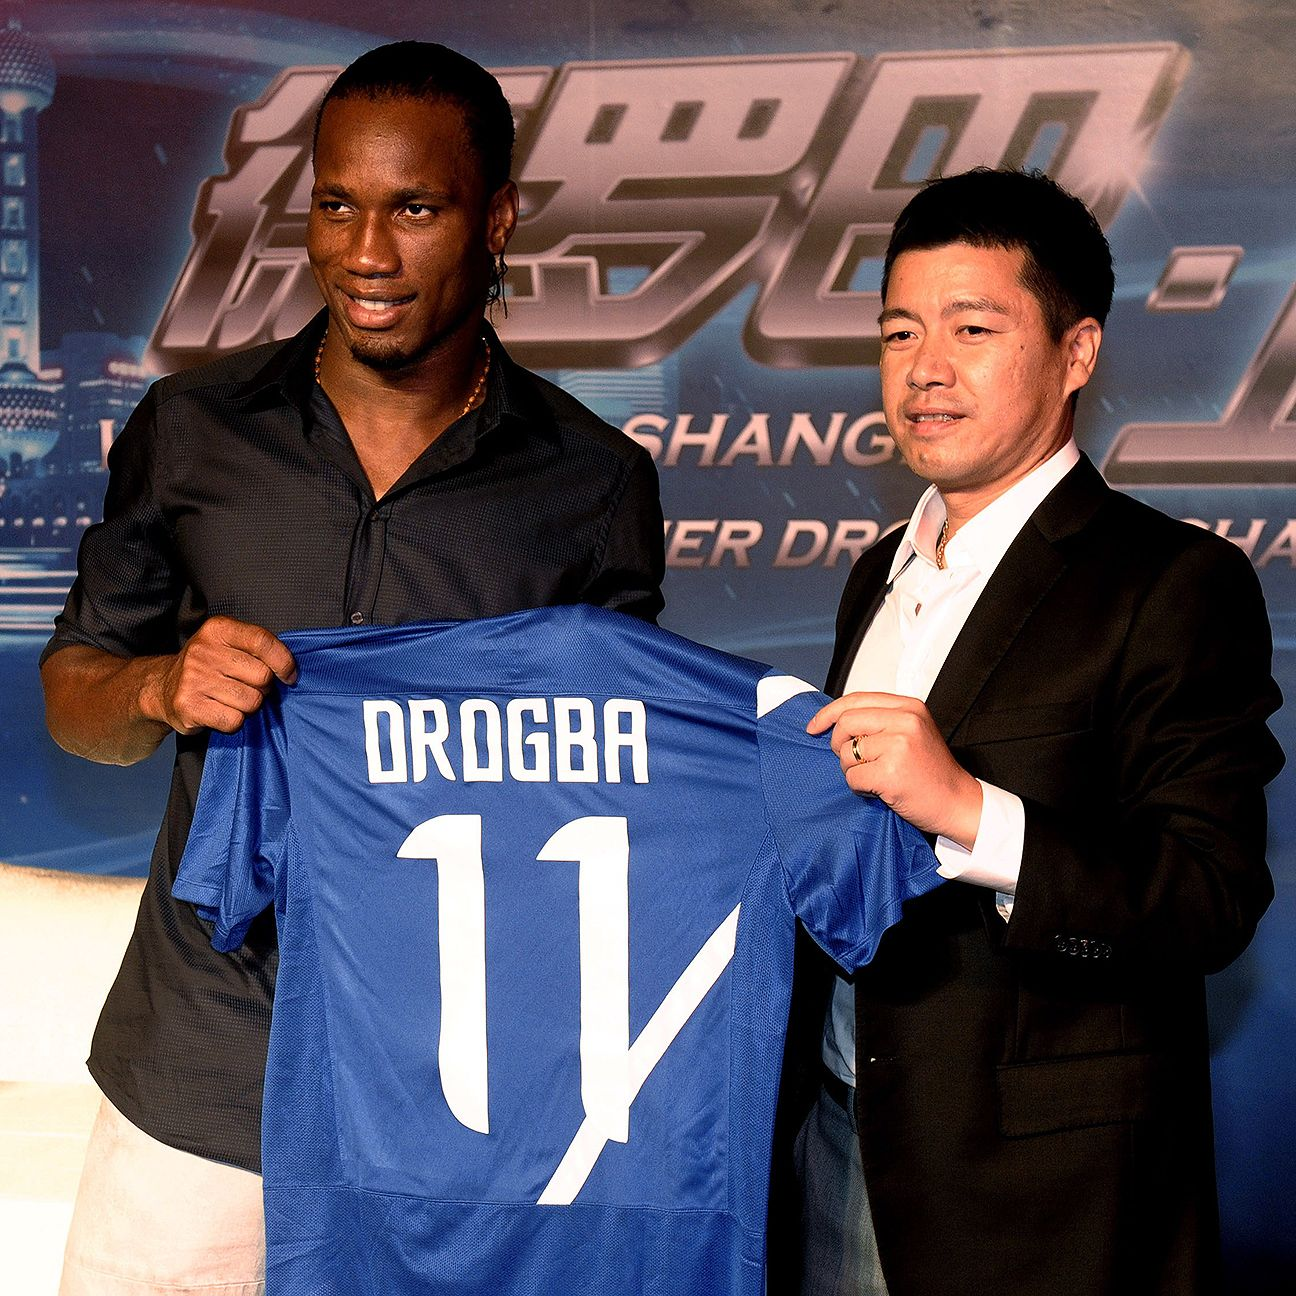 Didier Drogba's arrival to Shenhua was heralded, but his time in China did not even last a year.